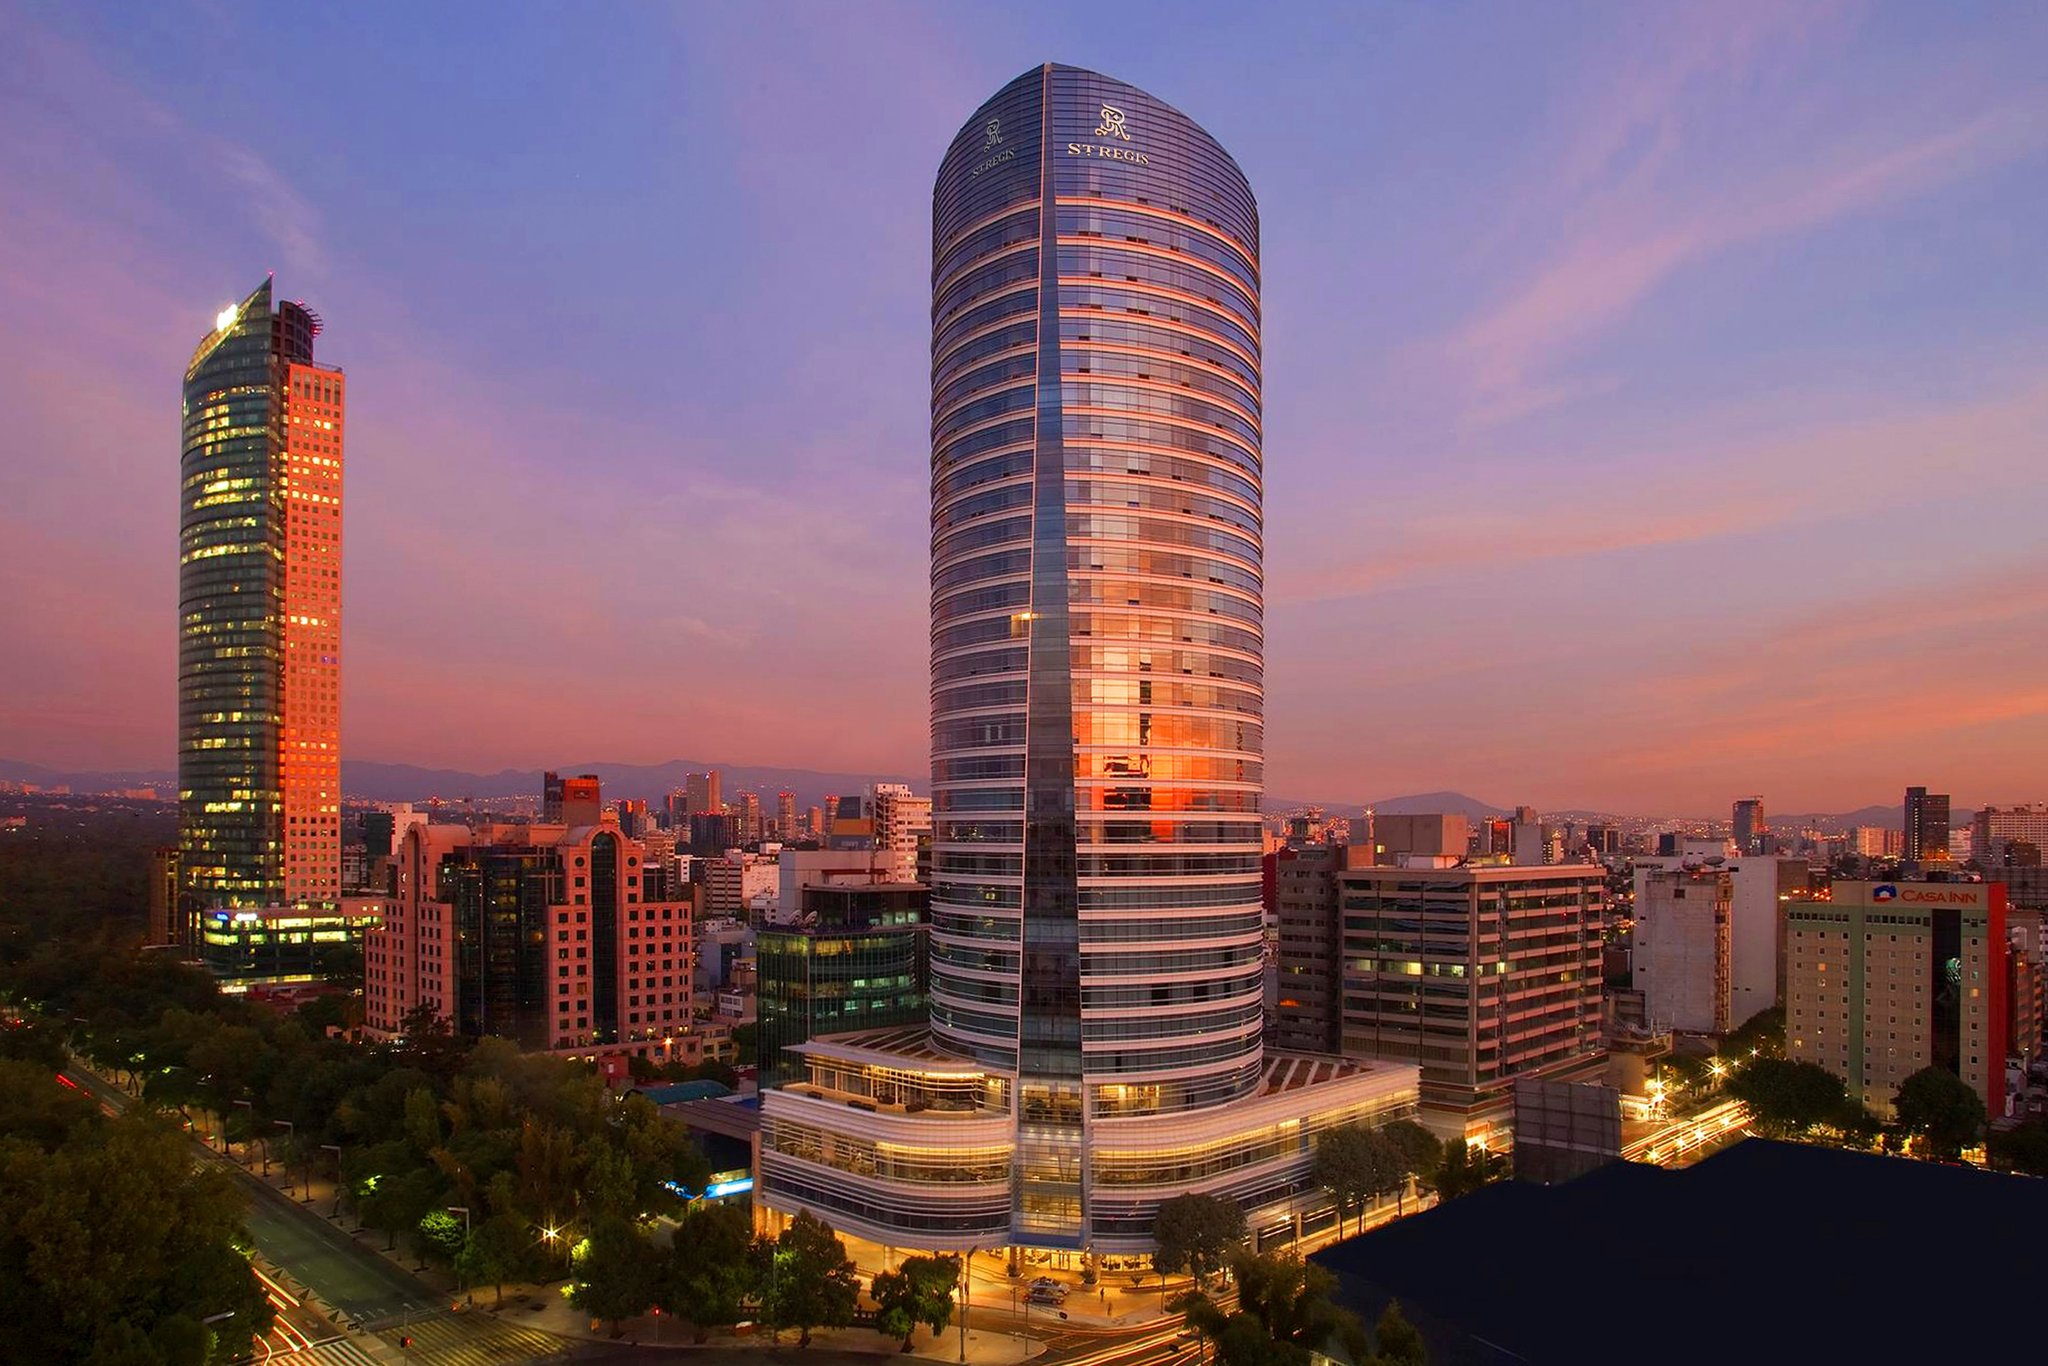 The St. Regis Mexico City